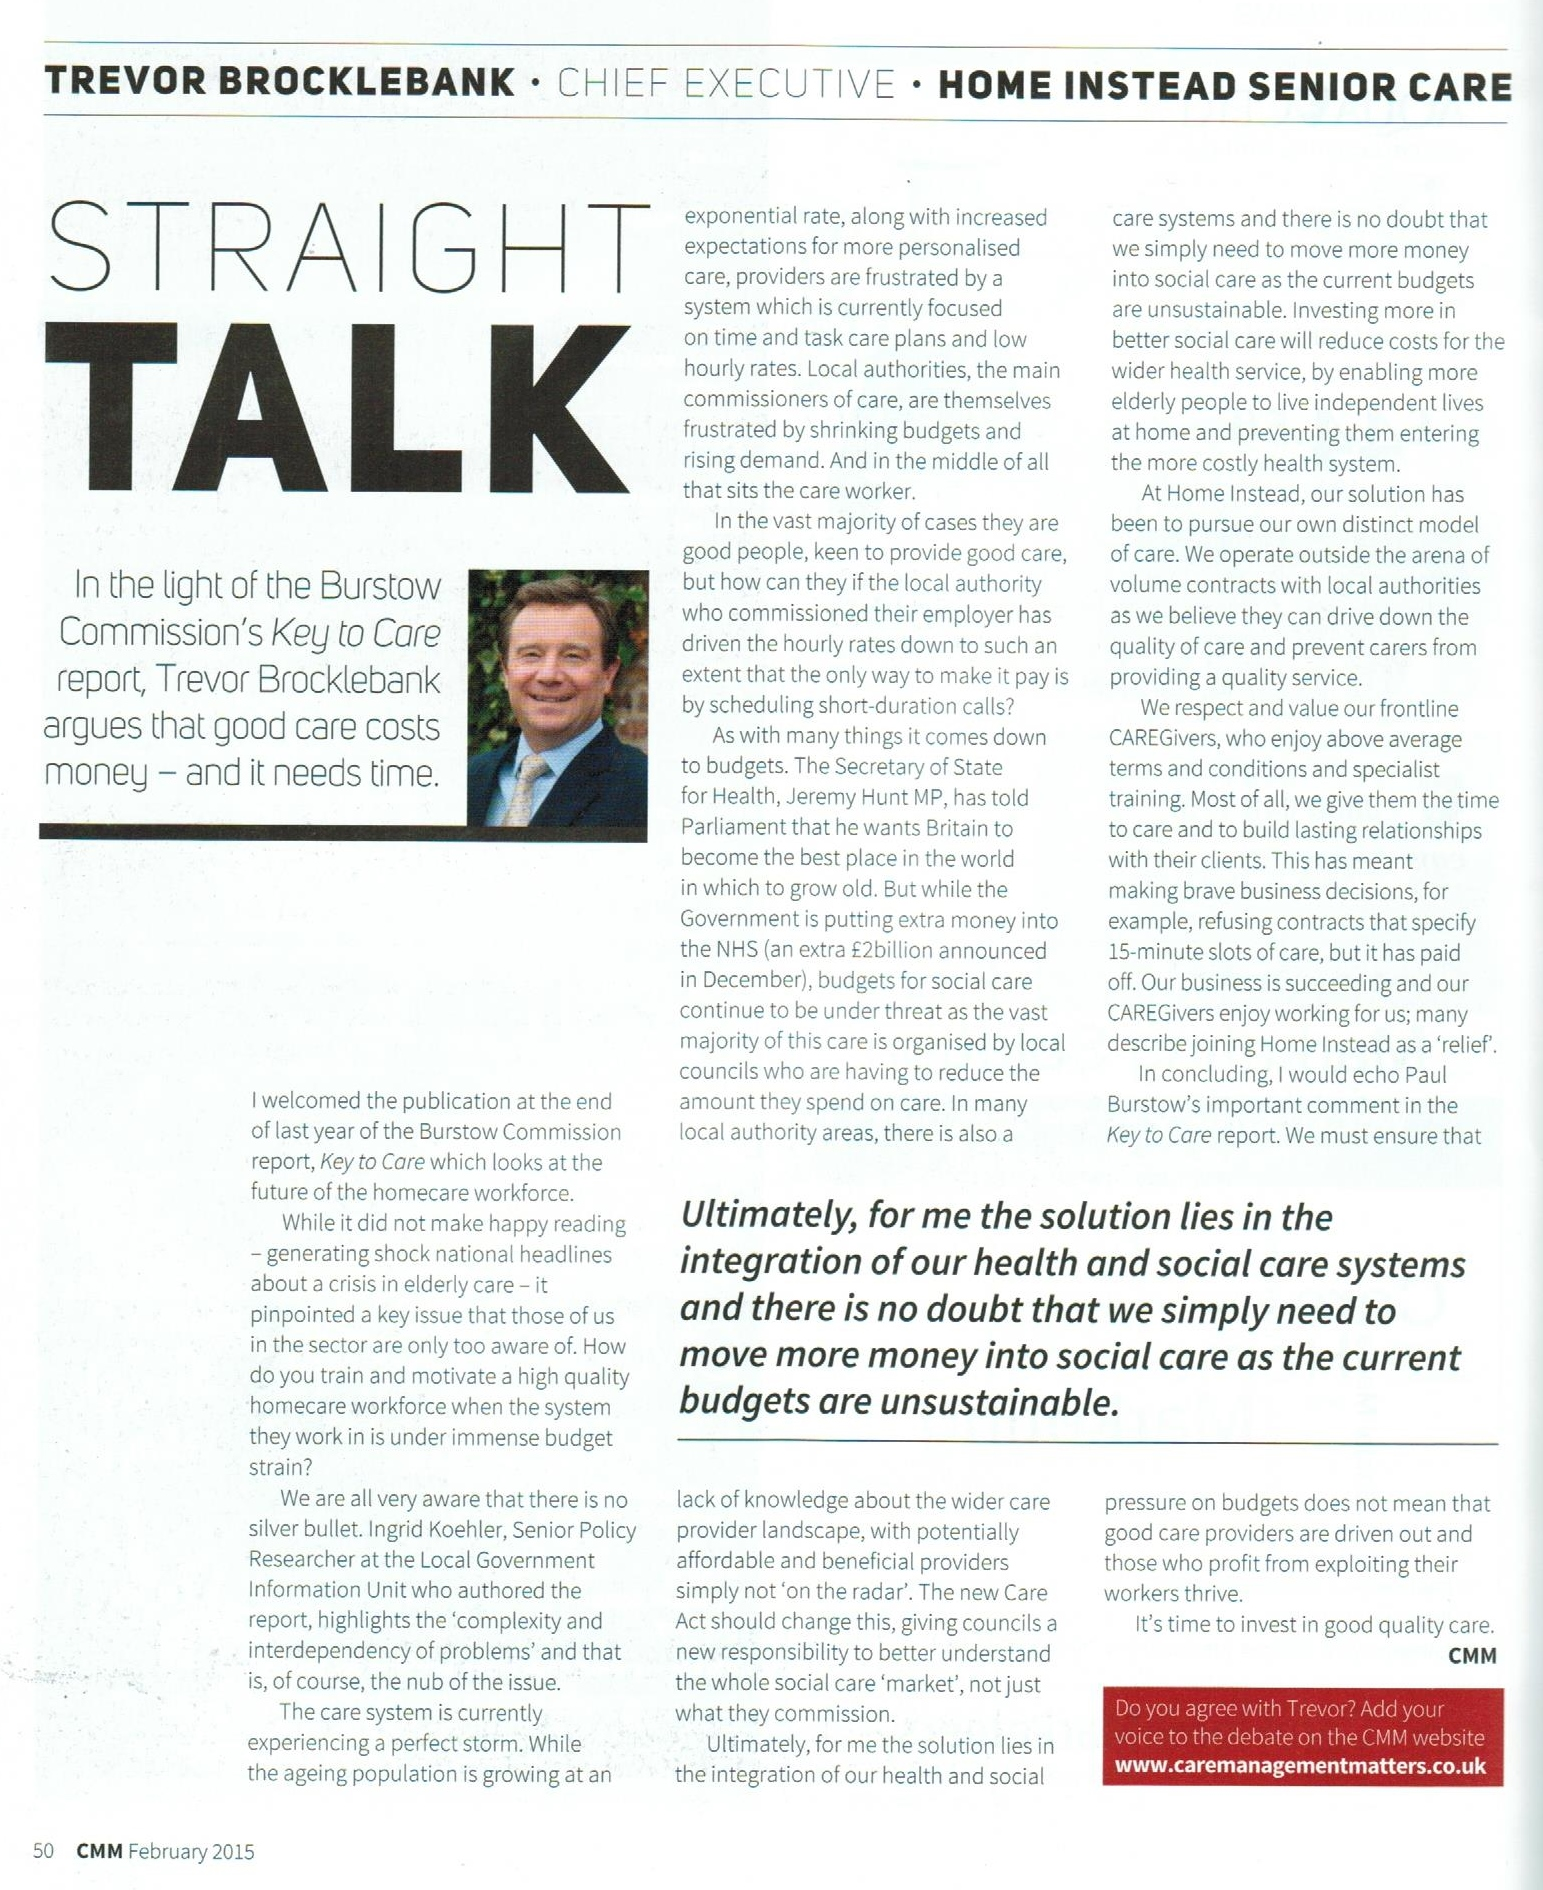 Home Instead Senior Care CEO, Trevor Brocklebank, featured in this month's edition of Care Management Matters